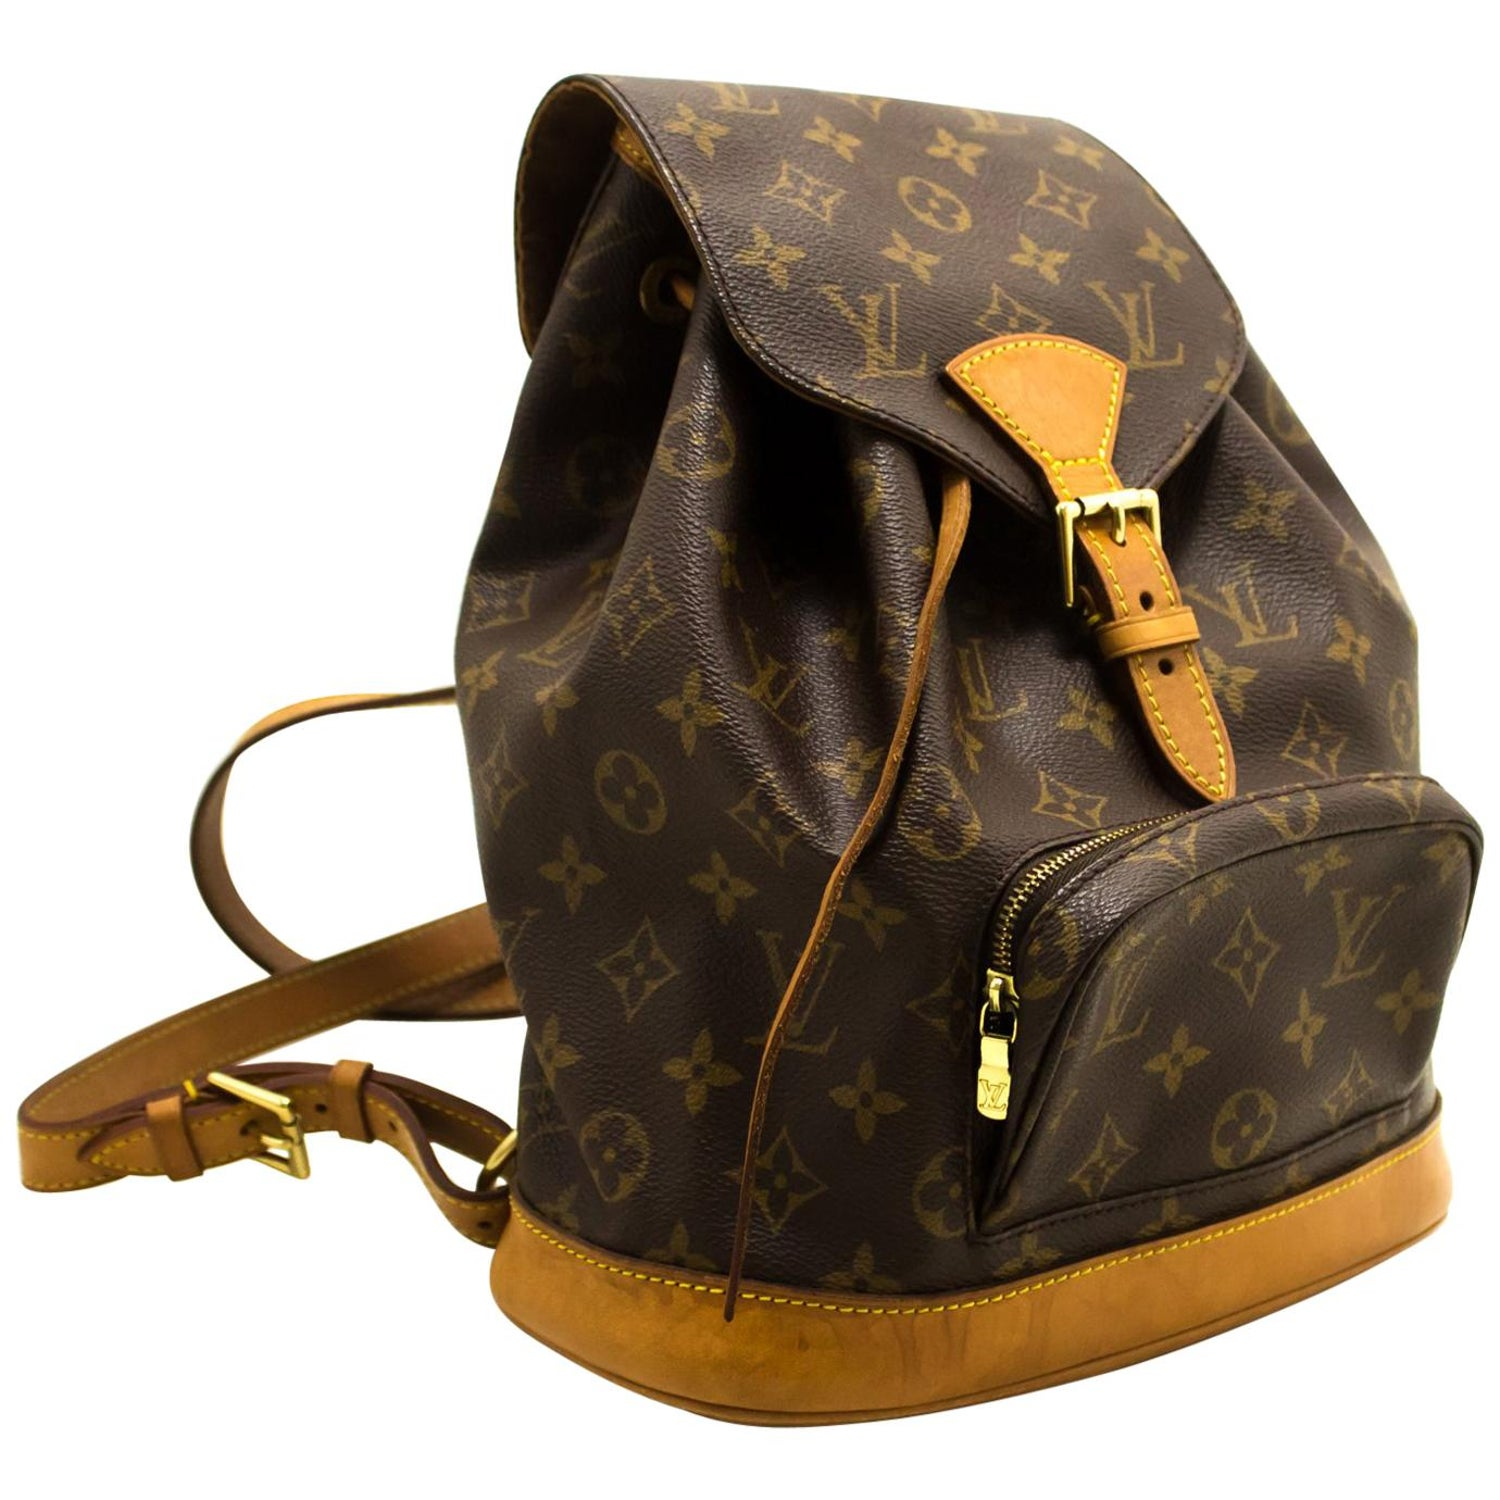 1d857a27f3fd5 Louis Vuitton Montsouris MM Monogram Backpack Bag Canvas Leather For Sale  at 1stdibs